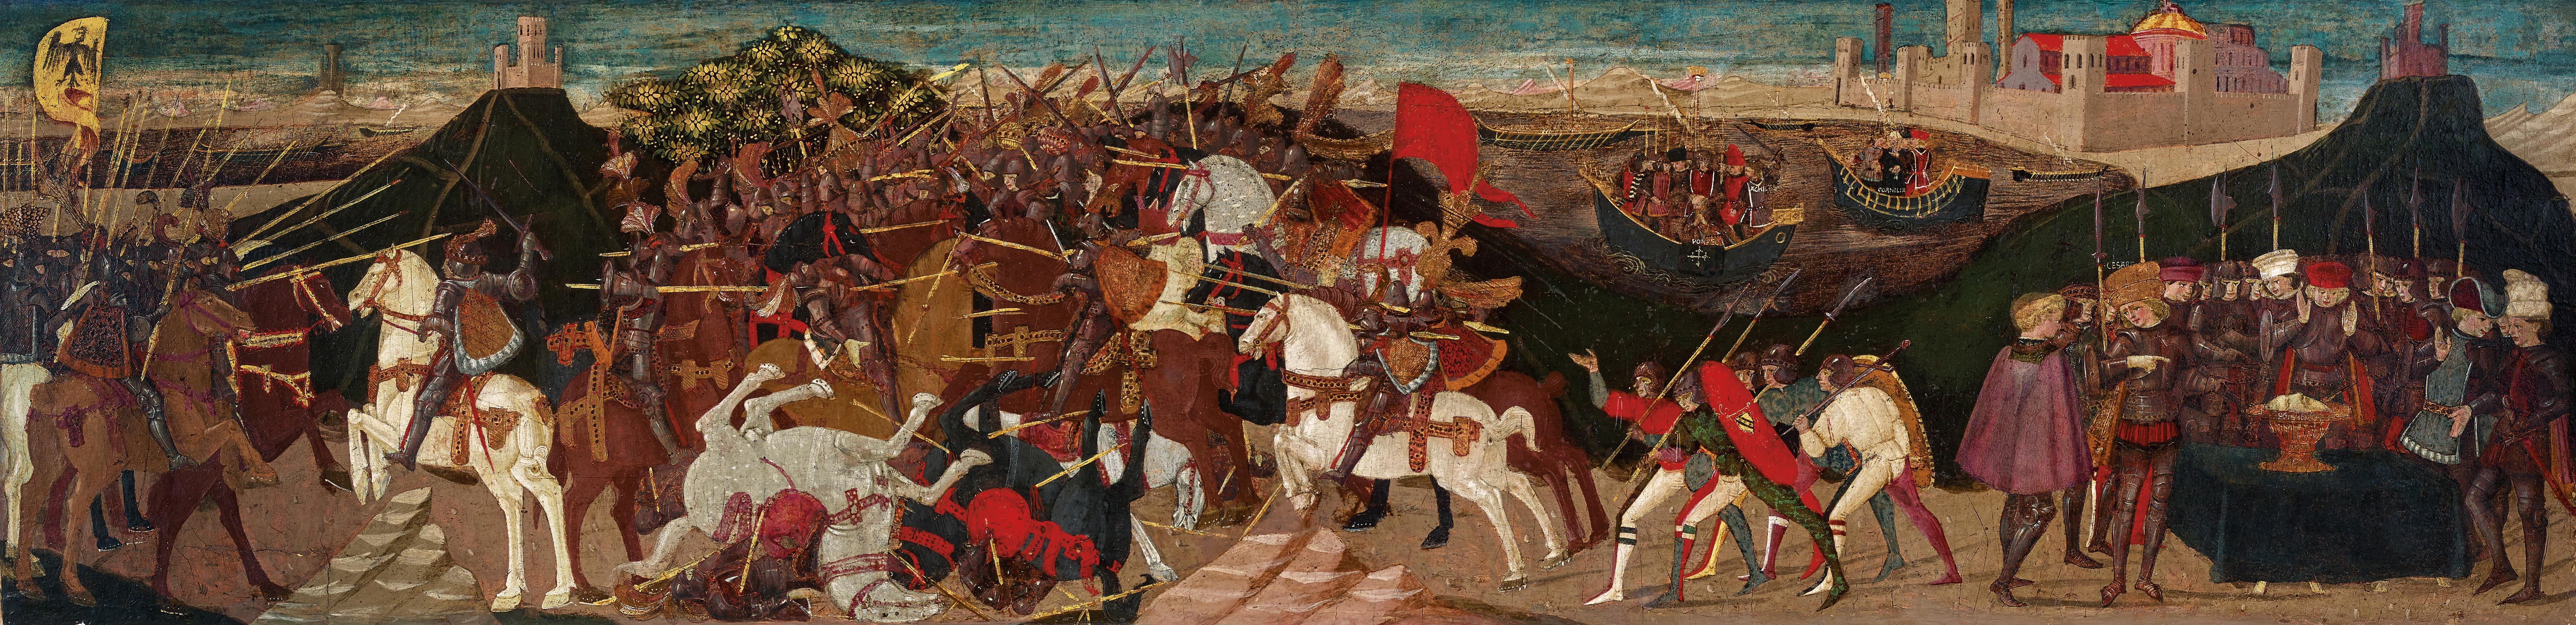 Cassone panel depicting the battle of Pharsalus, 1438-1465, Apollonio di Giovanni, Florence, Italy